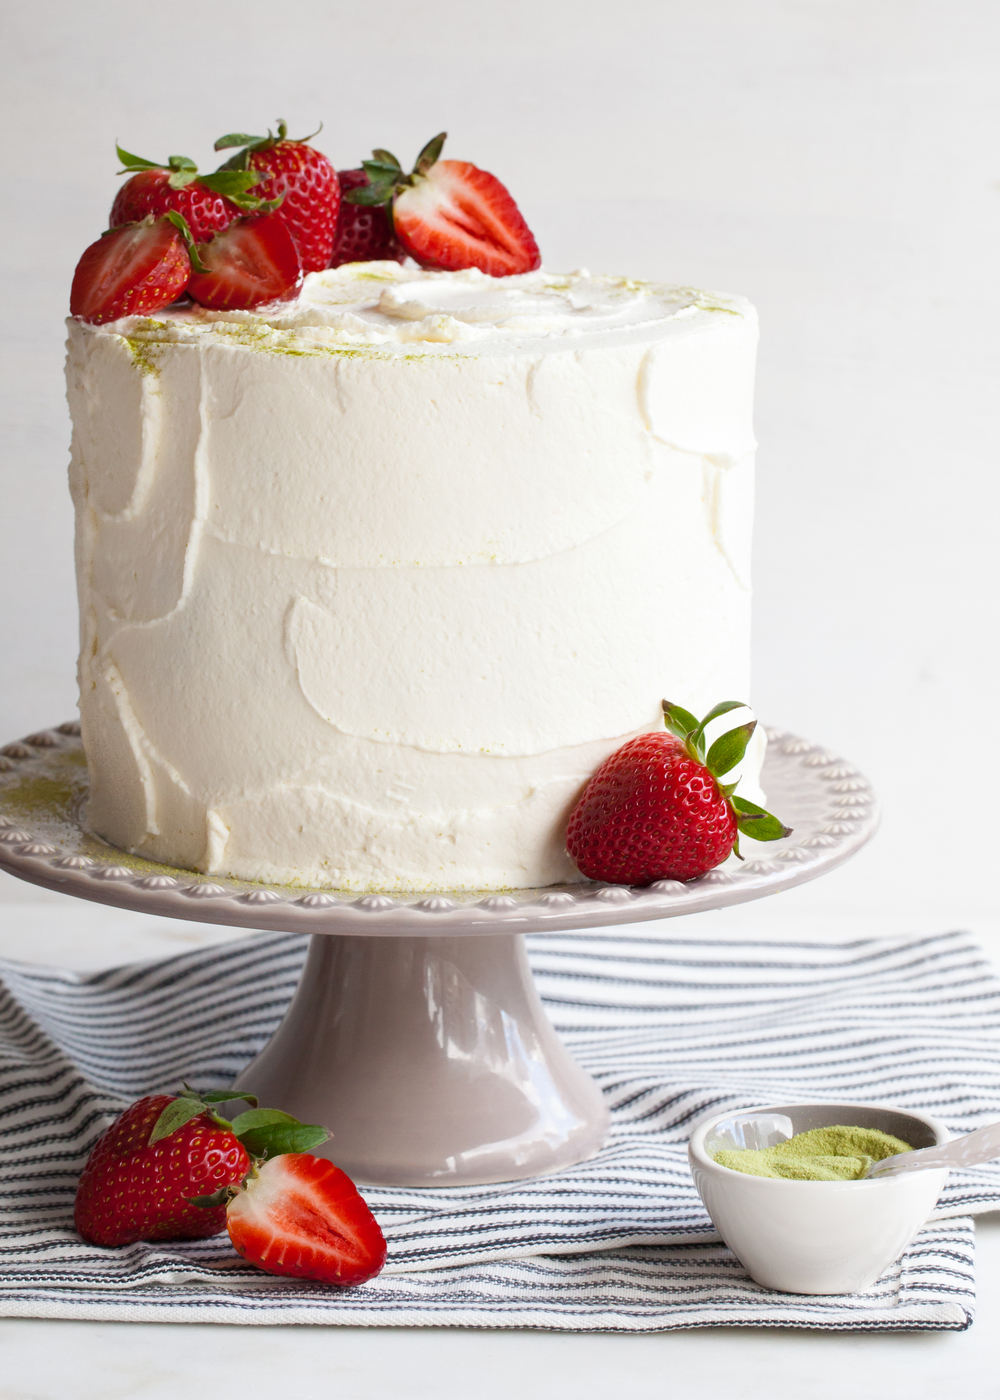 Matcha (green tea) genoise cake with strawberries and cream cheese whipped cream.